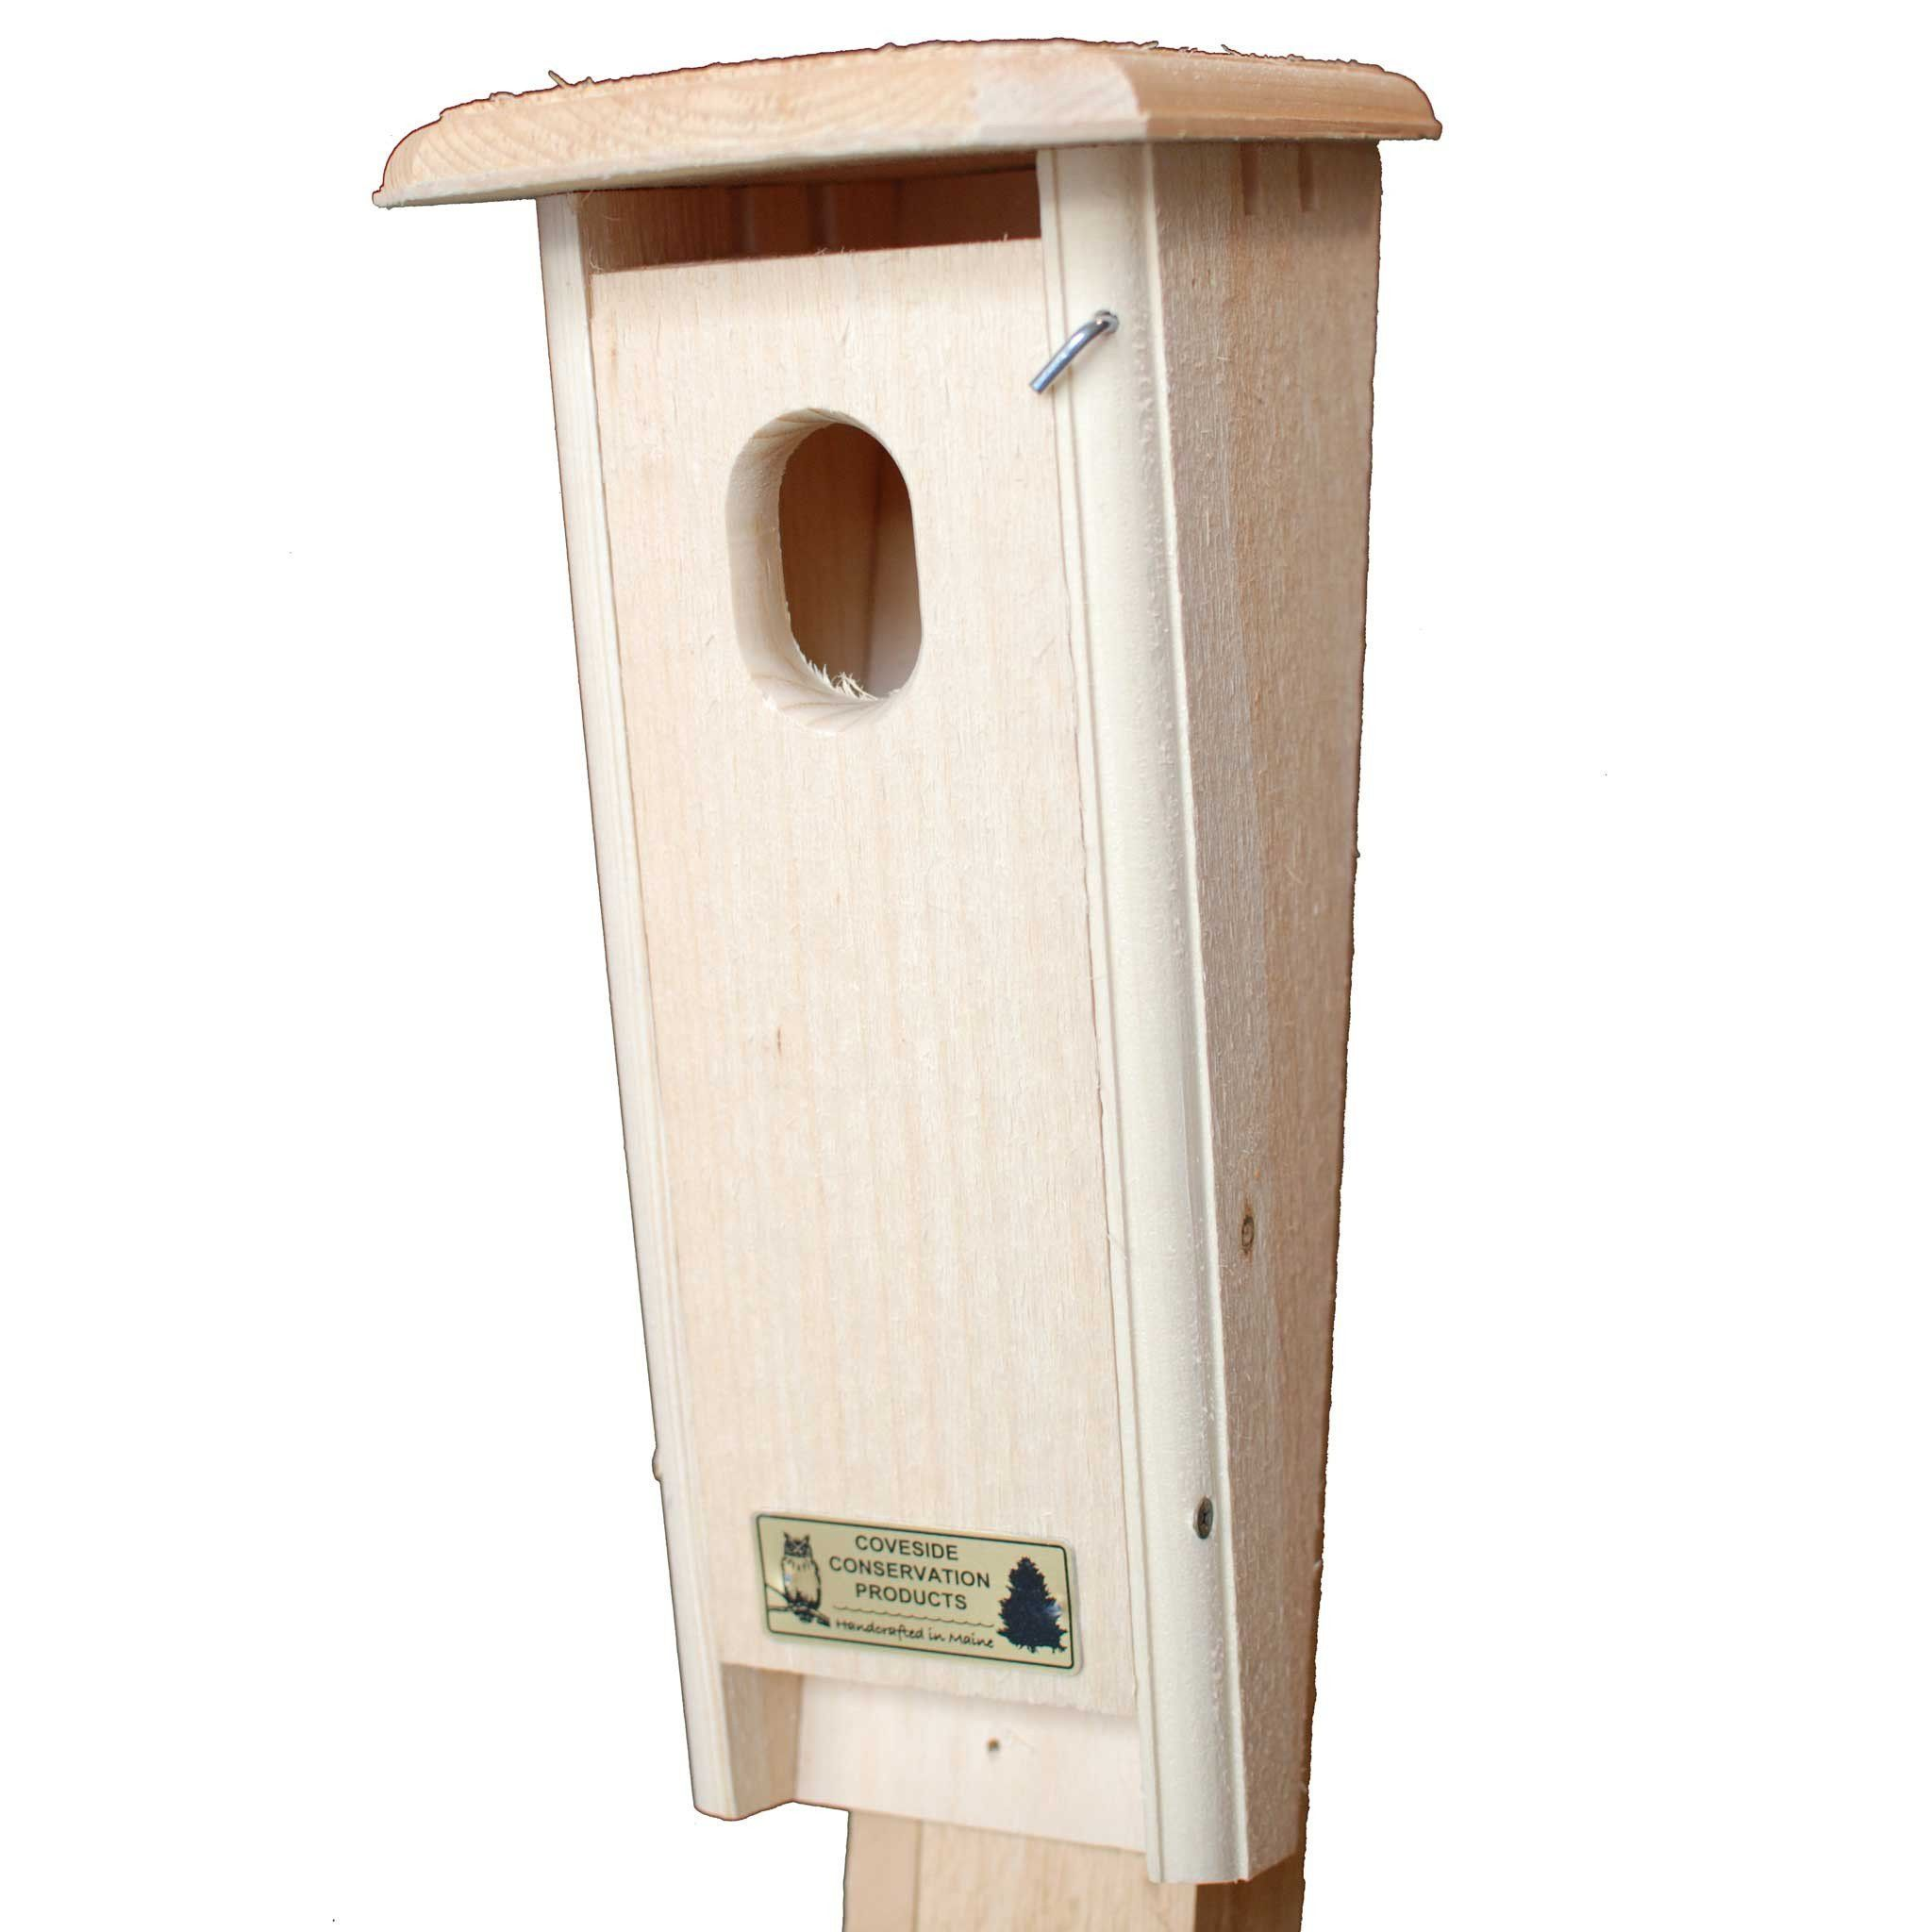 Protect Your Bluebirds From Cats And Other Predators The